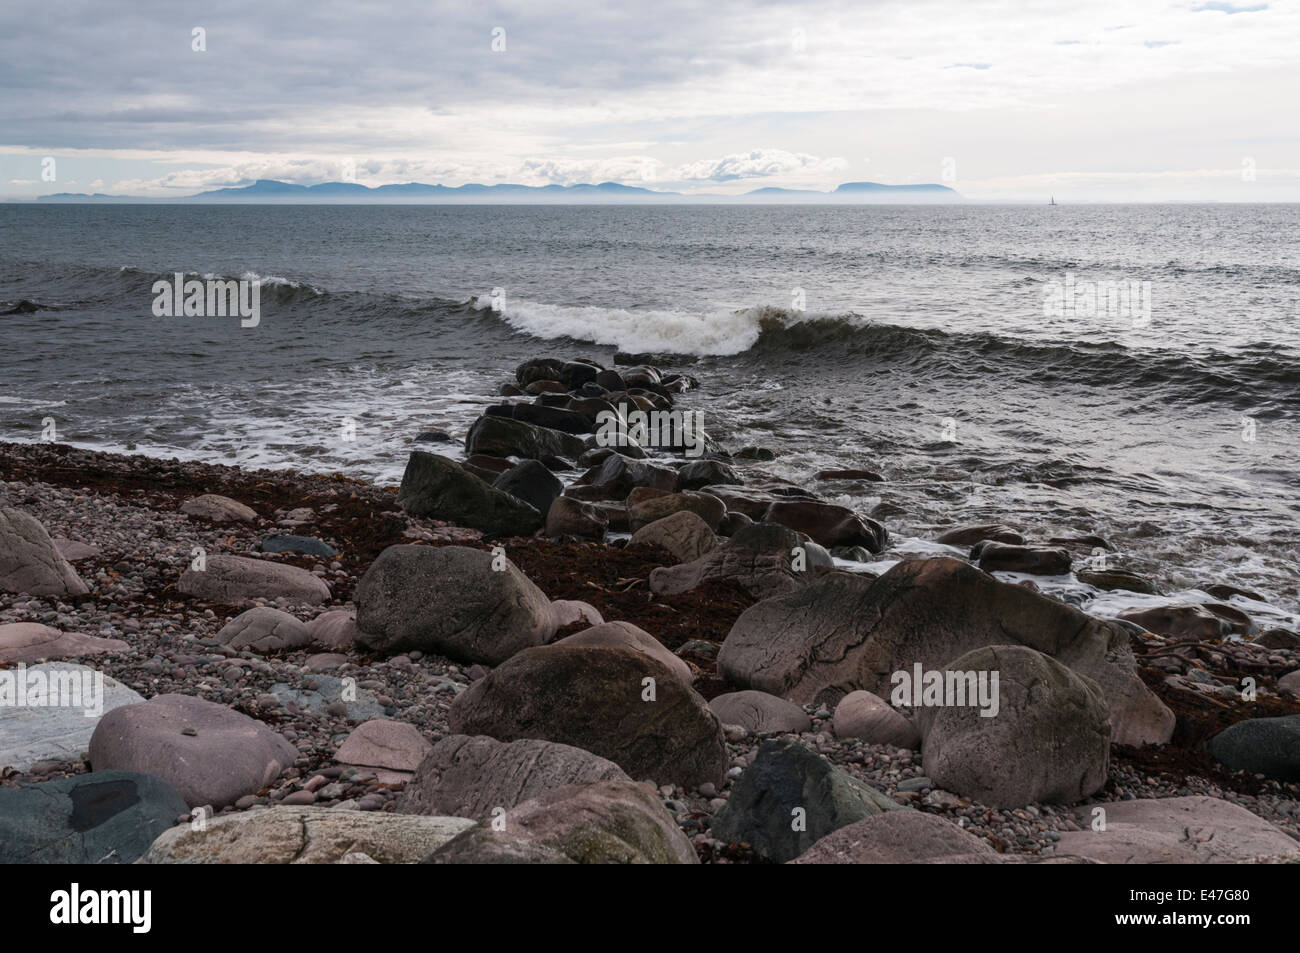 Looking at the Isle of Skye from Melvaig shore on a cloudy day across The Minch, Scotland Stock Photo